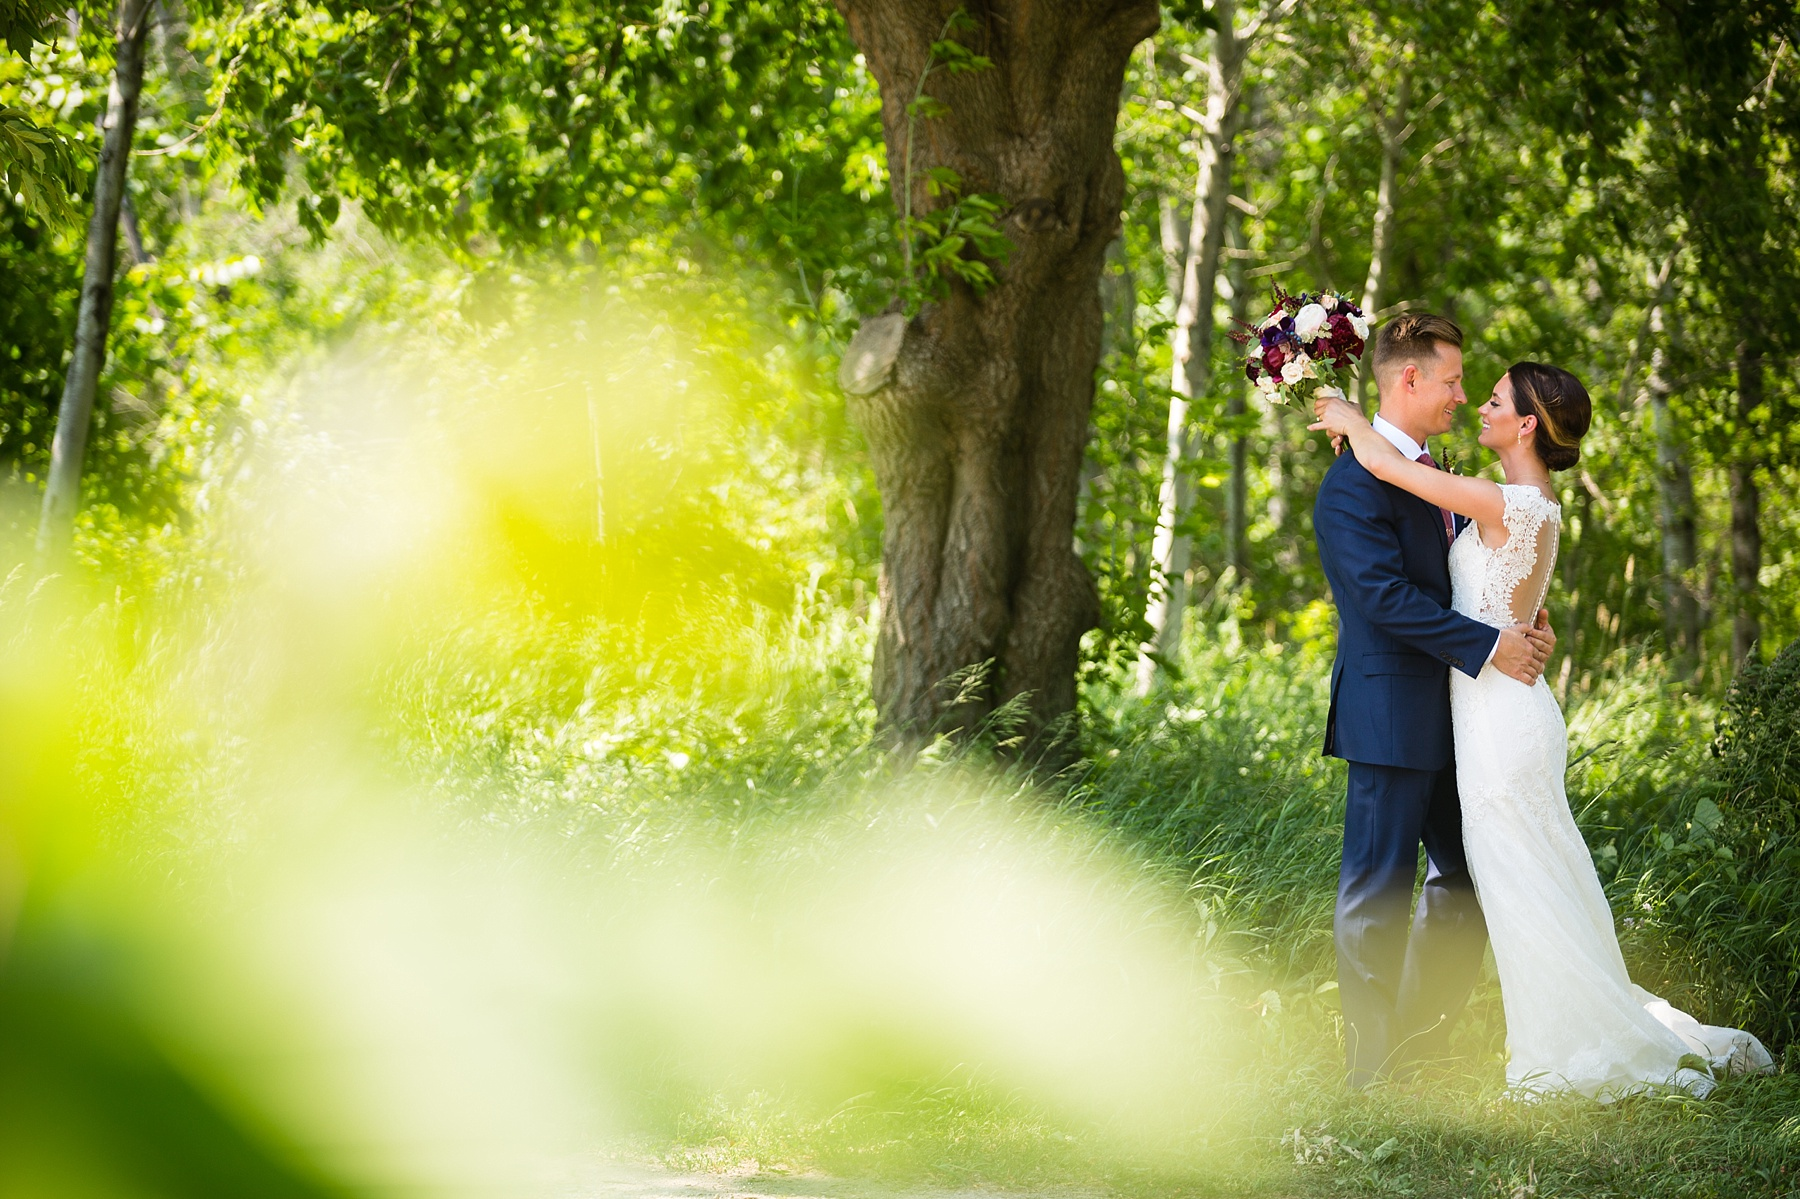 Brandon_Shafer_Photography_Traverse_City_Wedding_0023.jpg